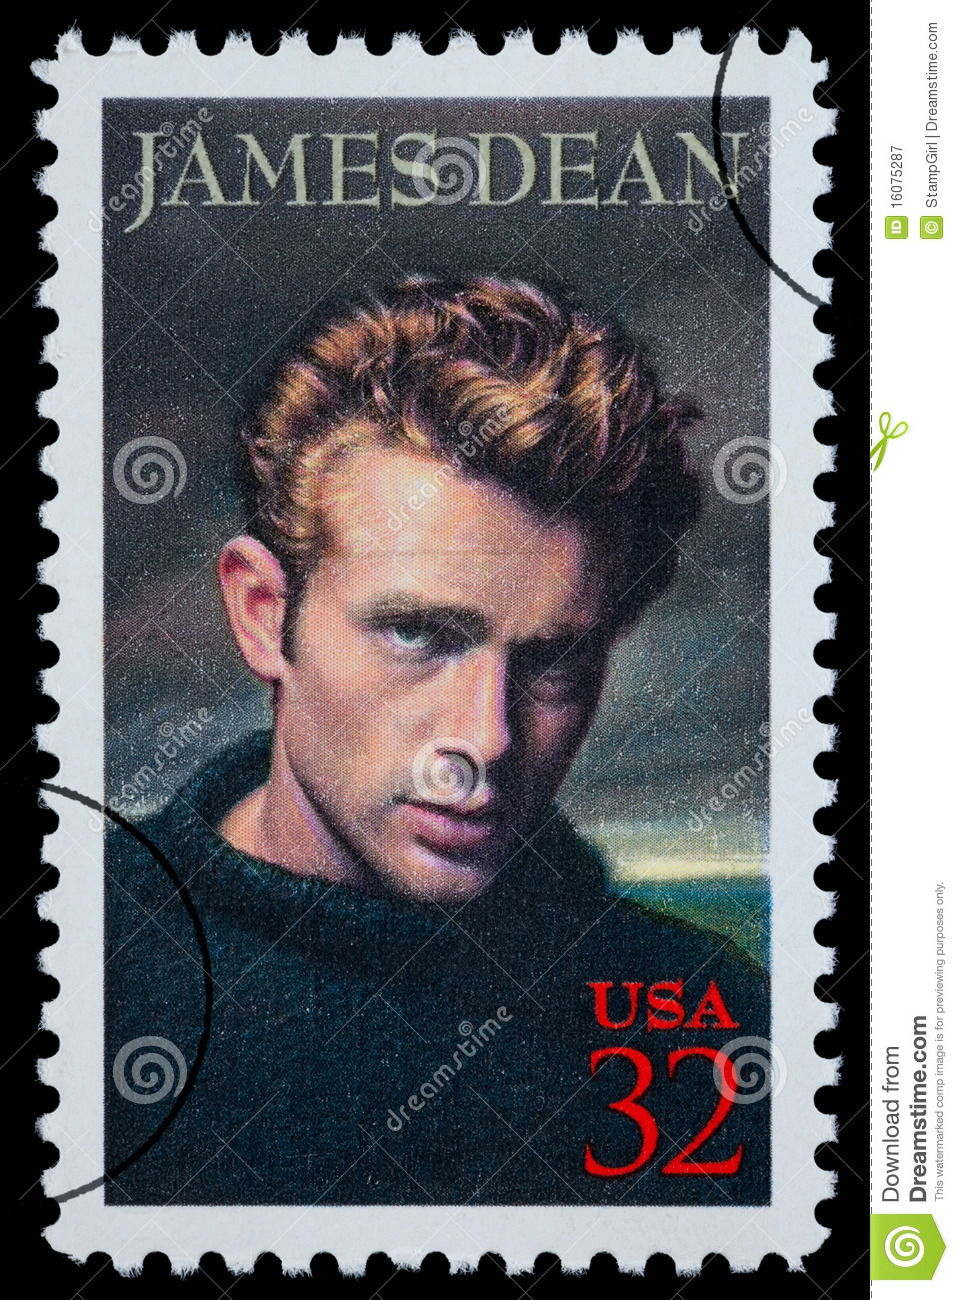 Sello de James Dean